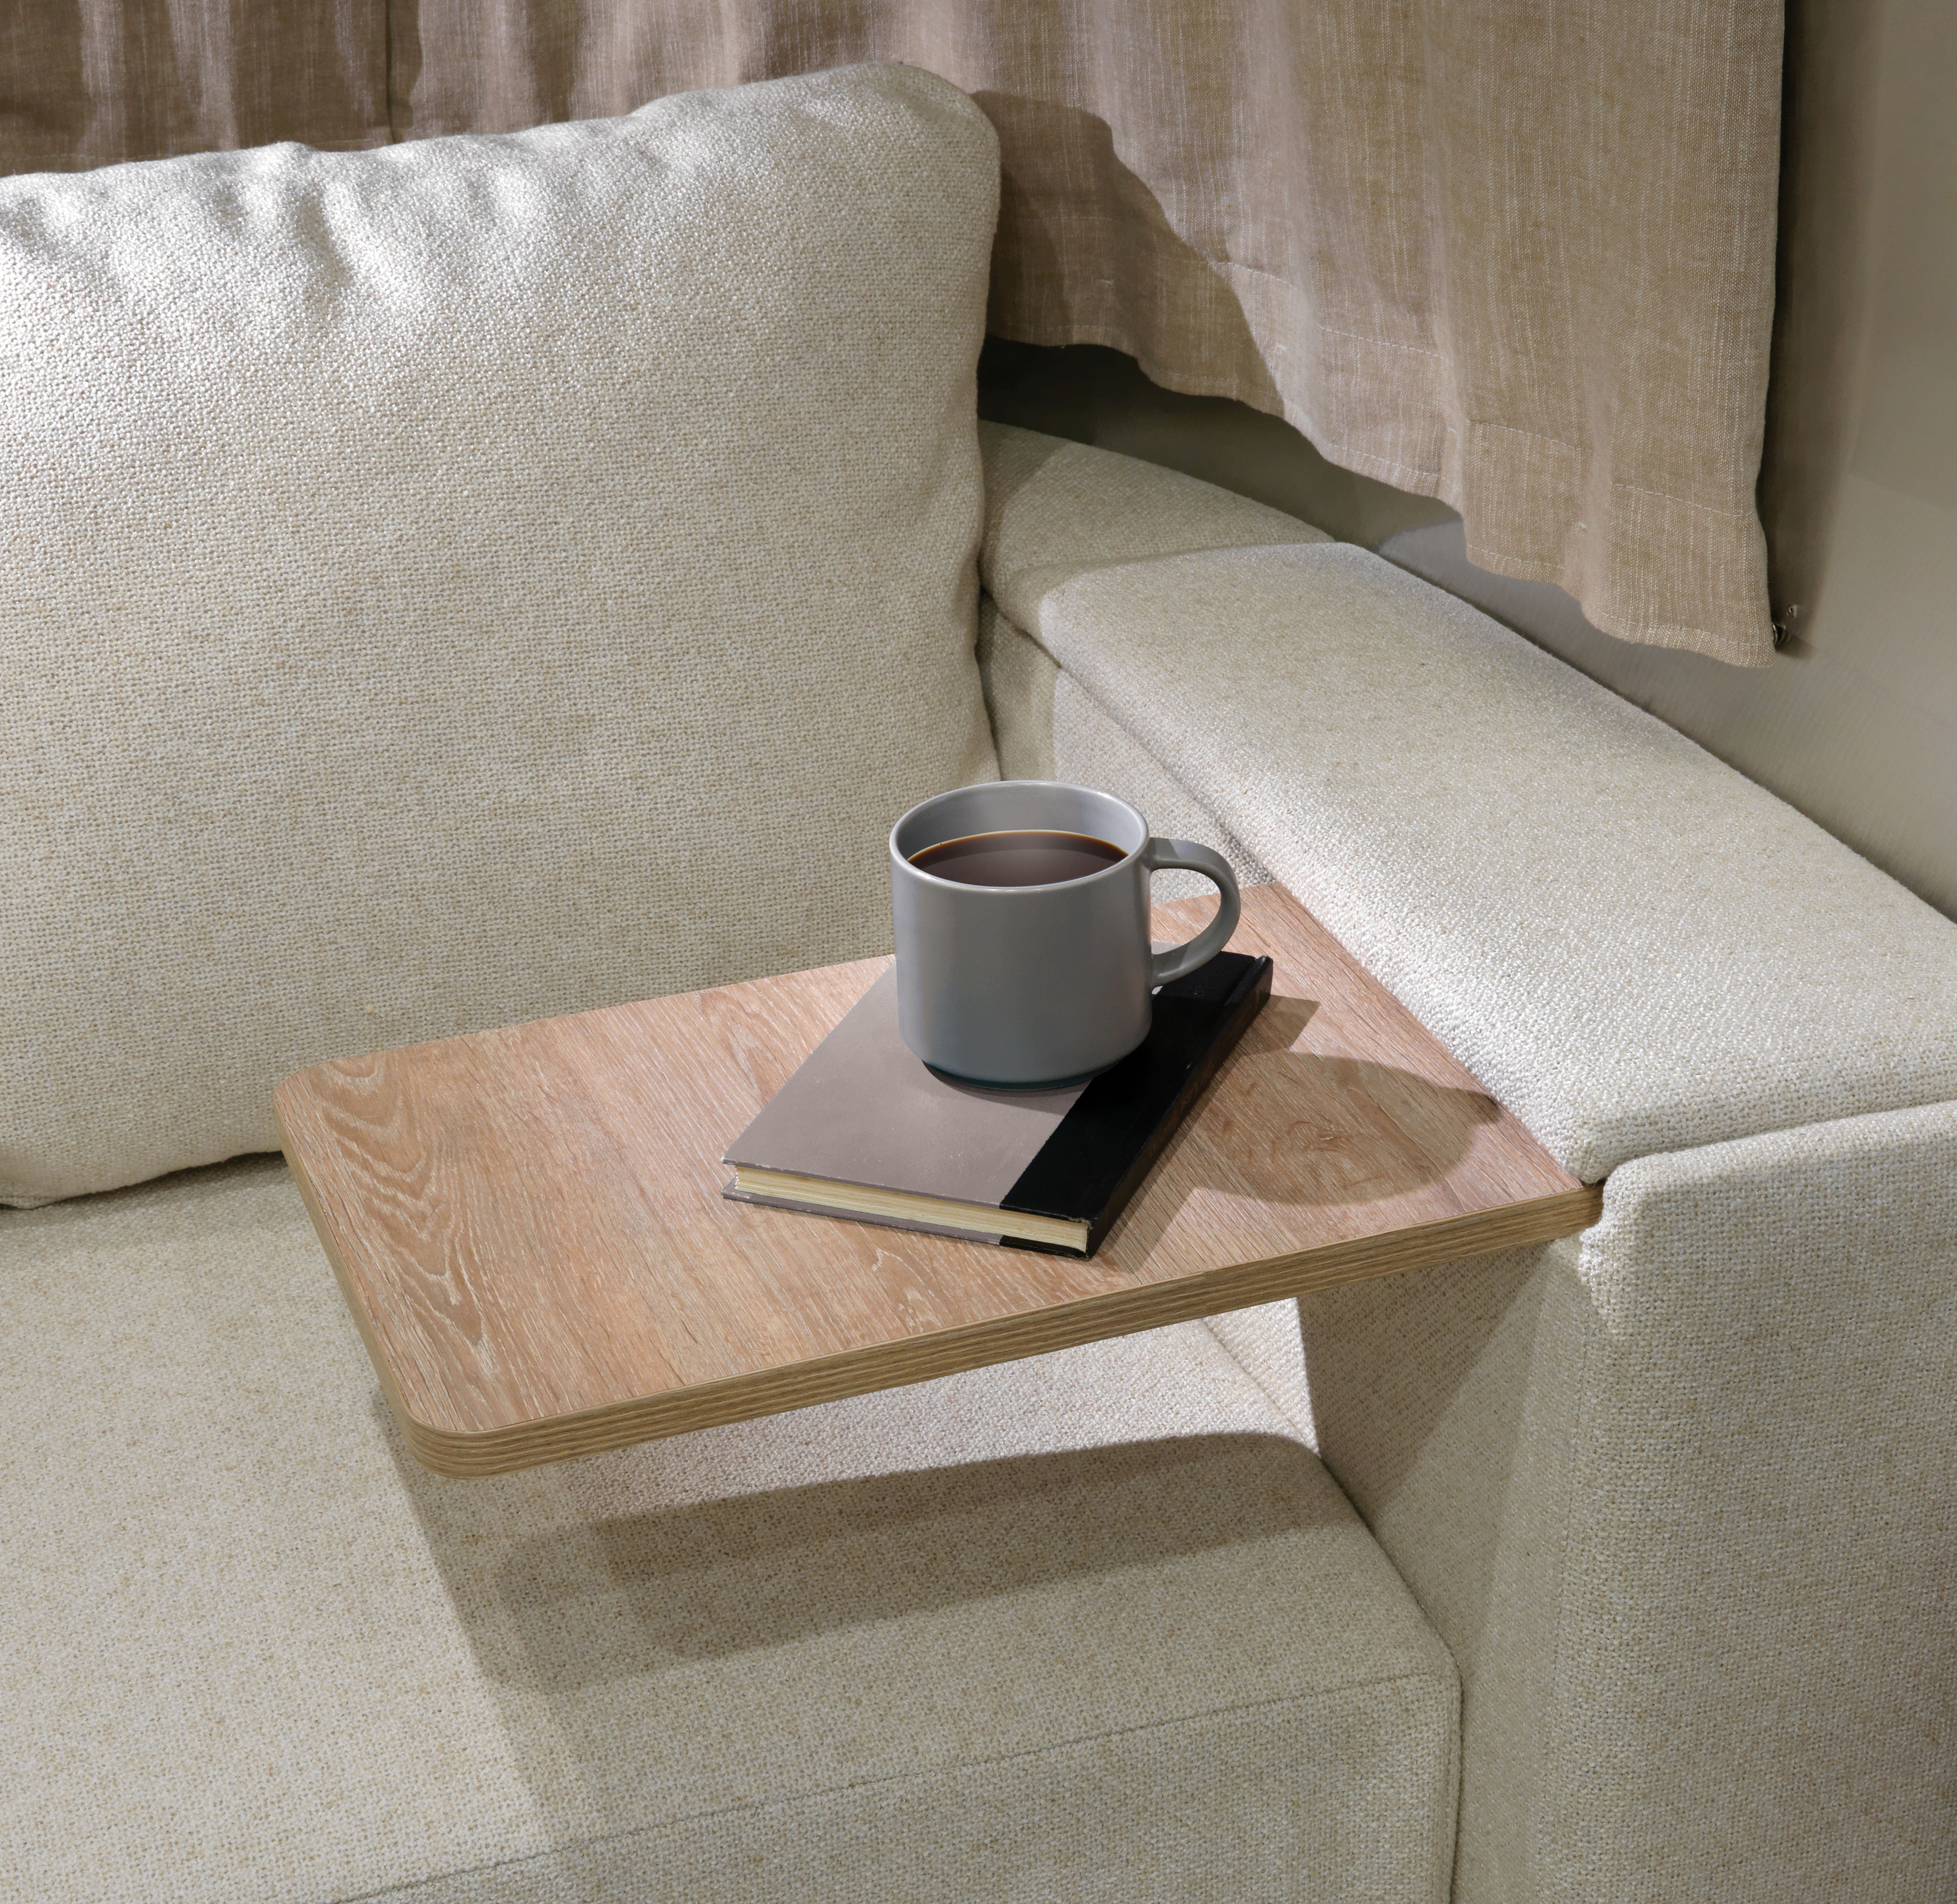 AIRMKT 2022 Pottery Barn Interior Airline Tray Cup 97818 WEB